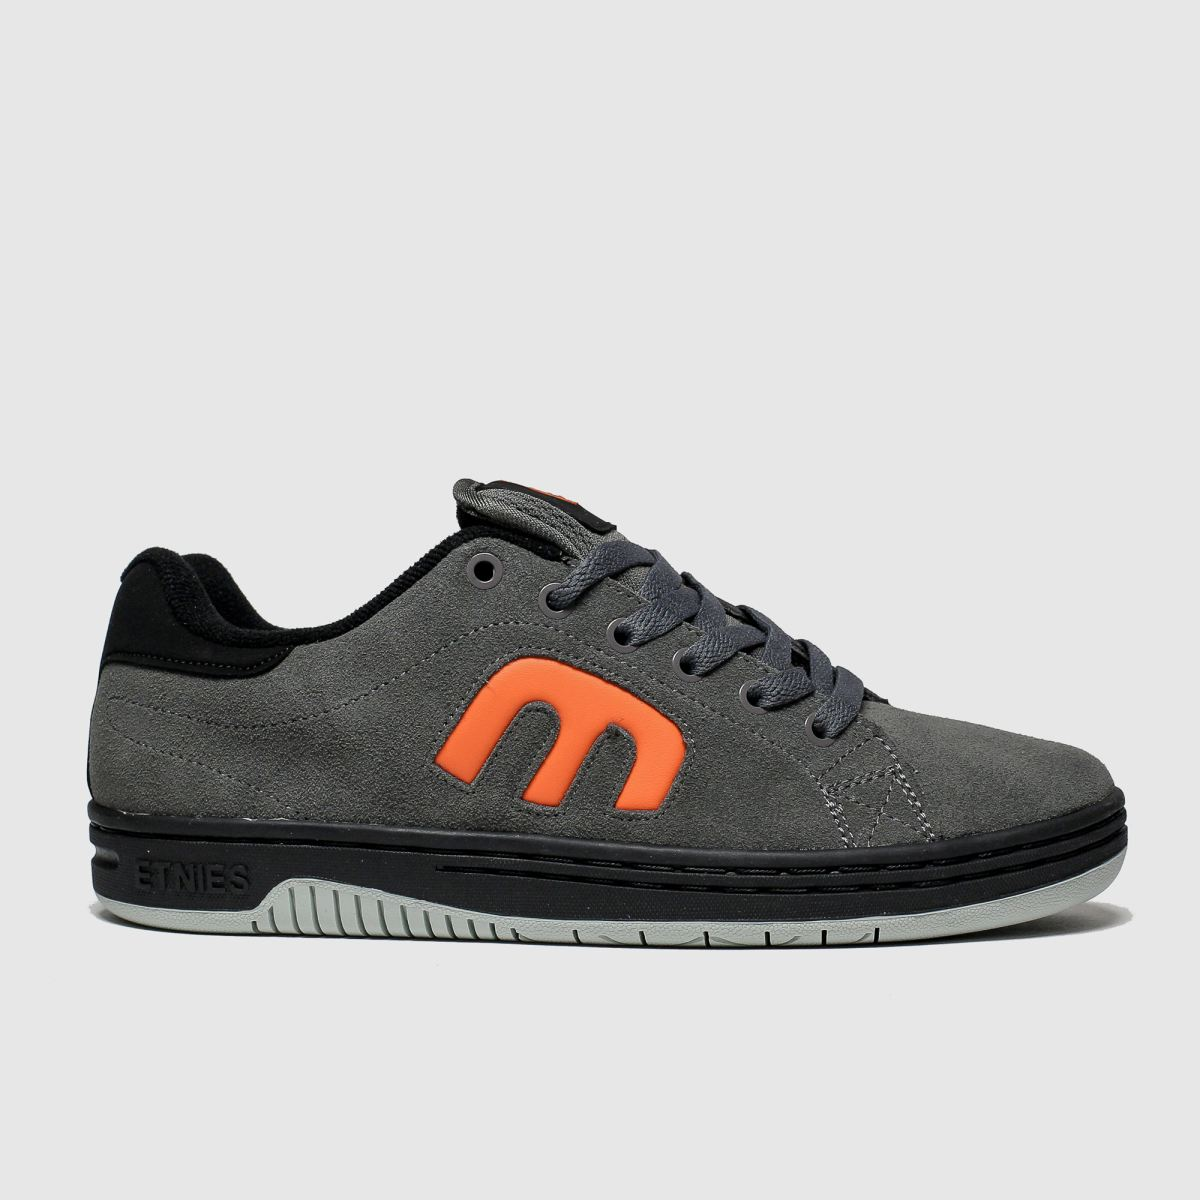 Etnies Grey & Black Calli-cut Trainers